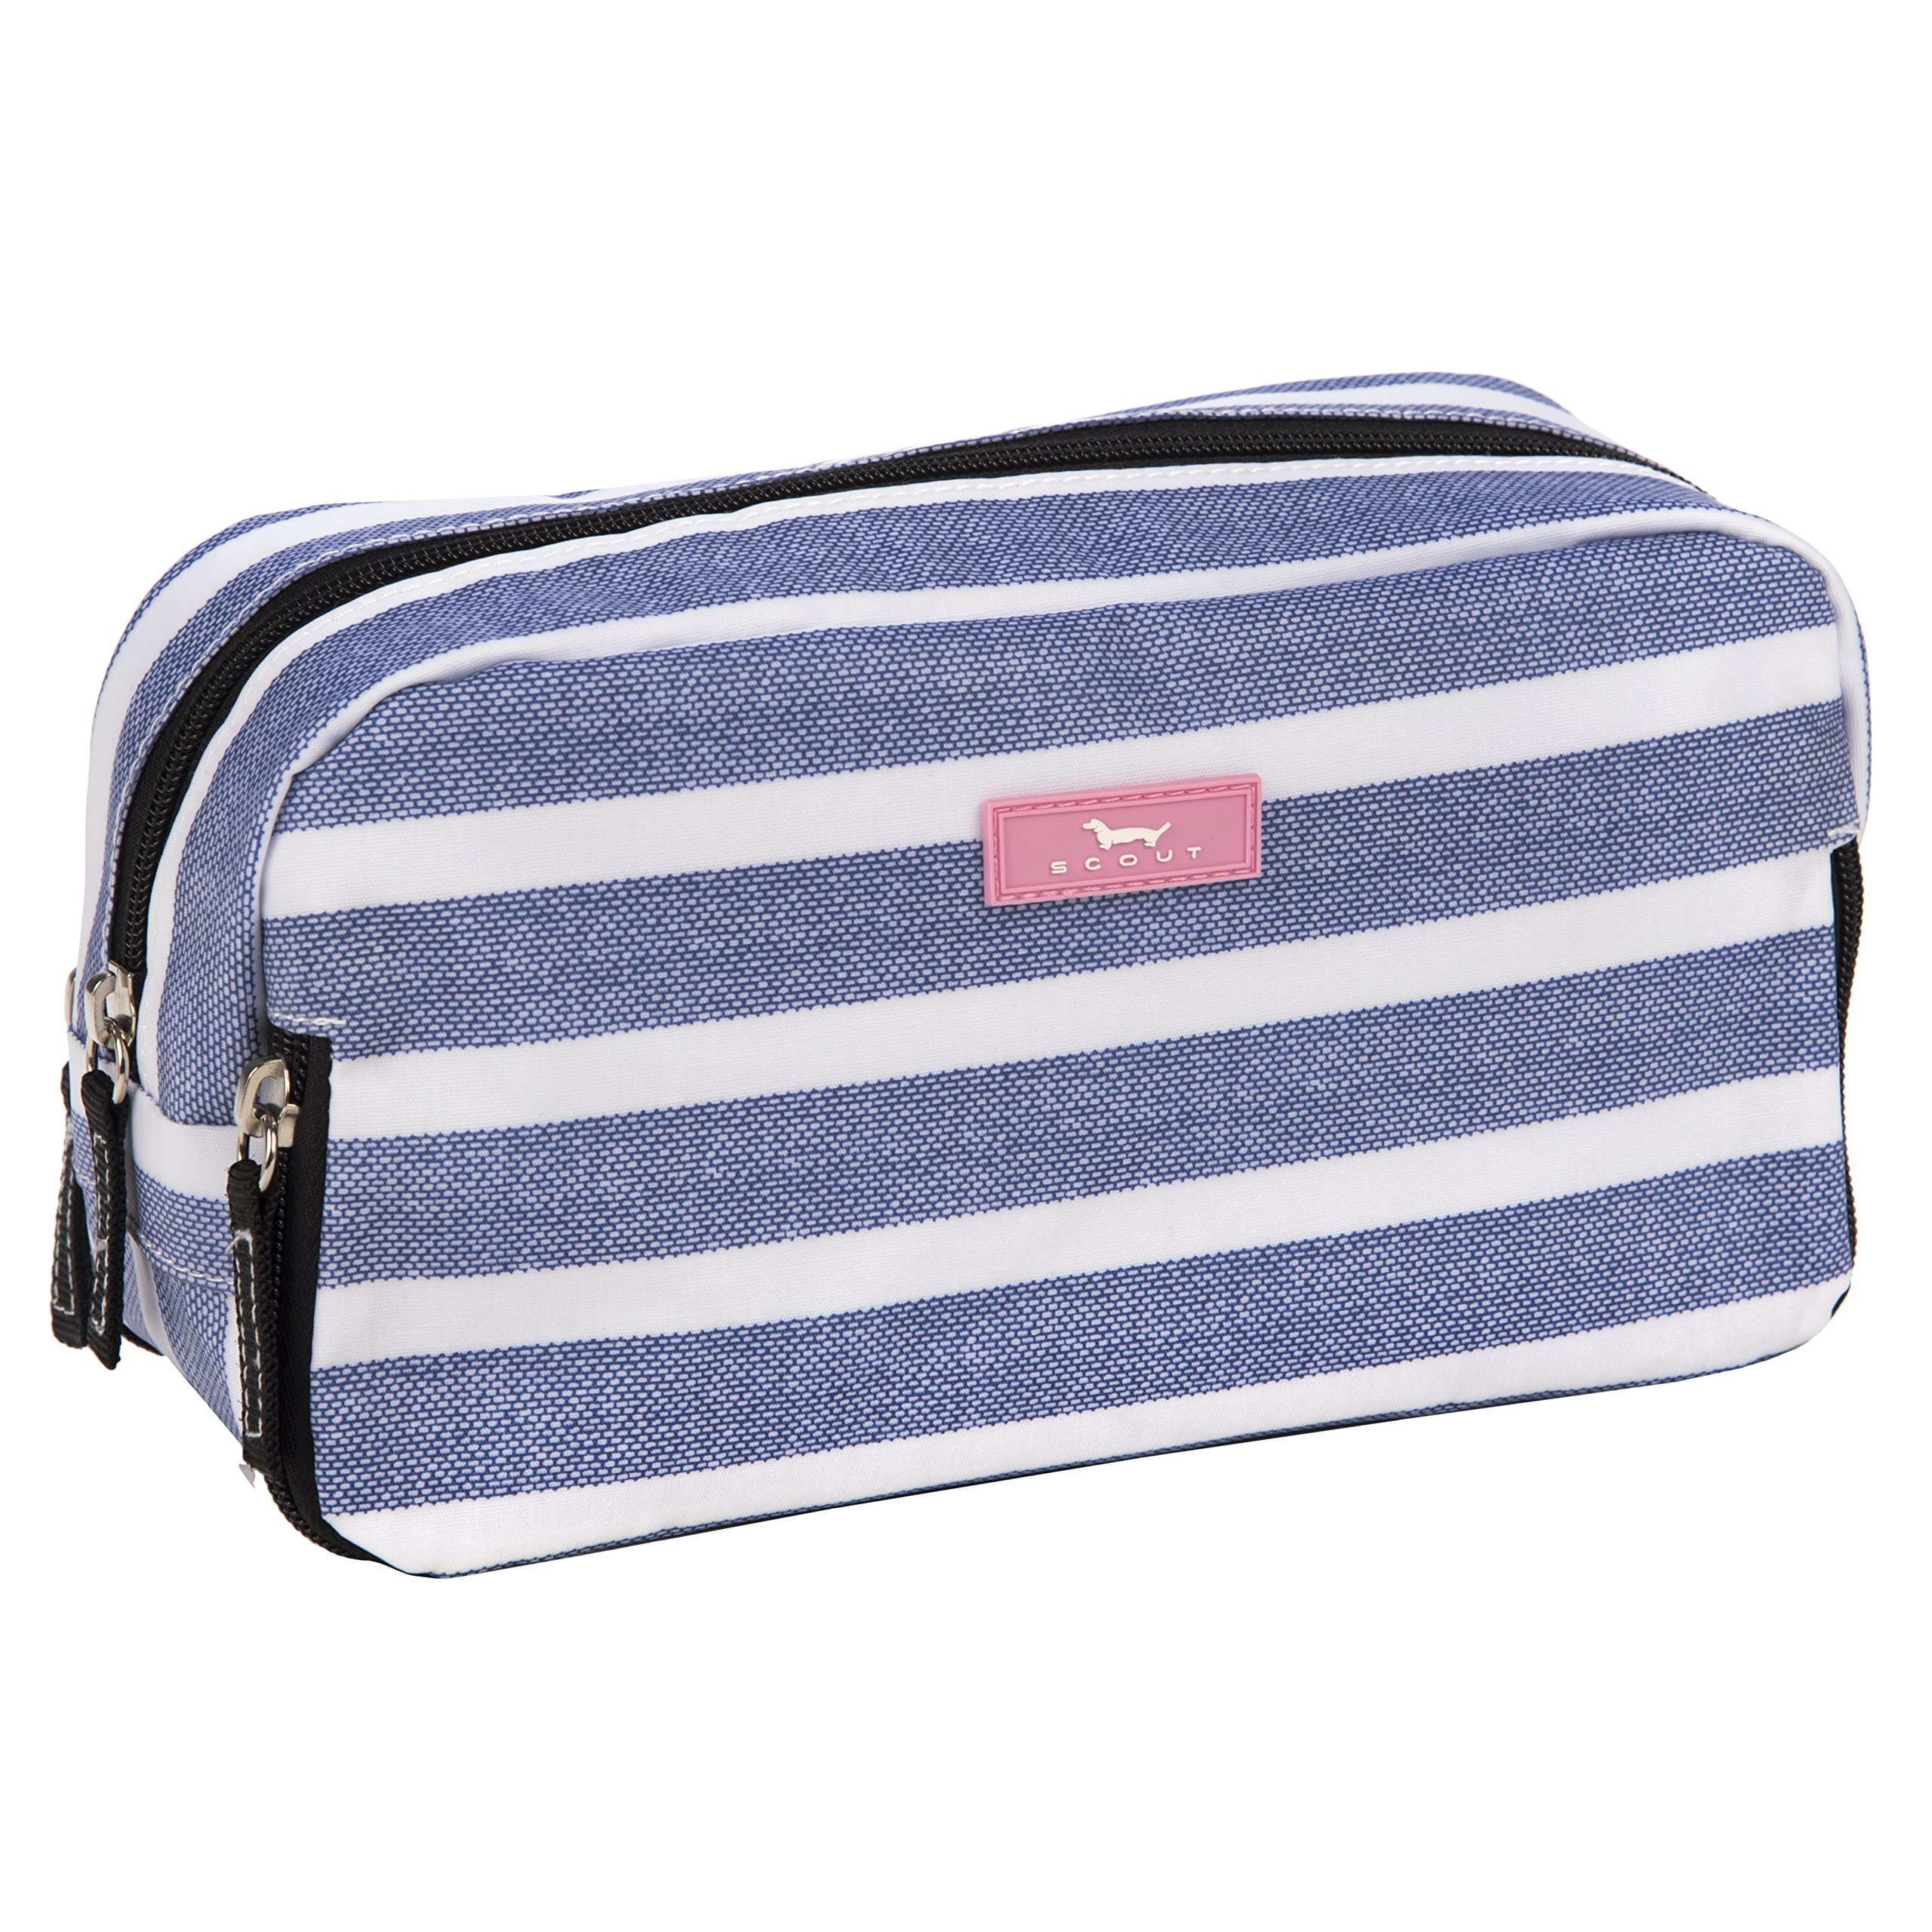 SCOUT 3-Way Bag, Toiletry & Cosmetic Multi Compartment Travel Organizer, 3 Zipper Compartments, Water Resistant, Oxford Blues